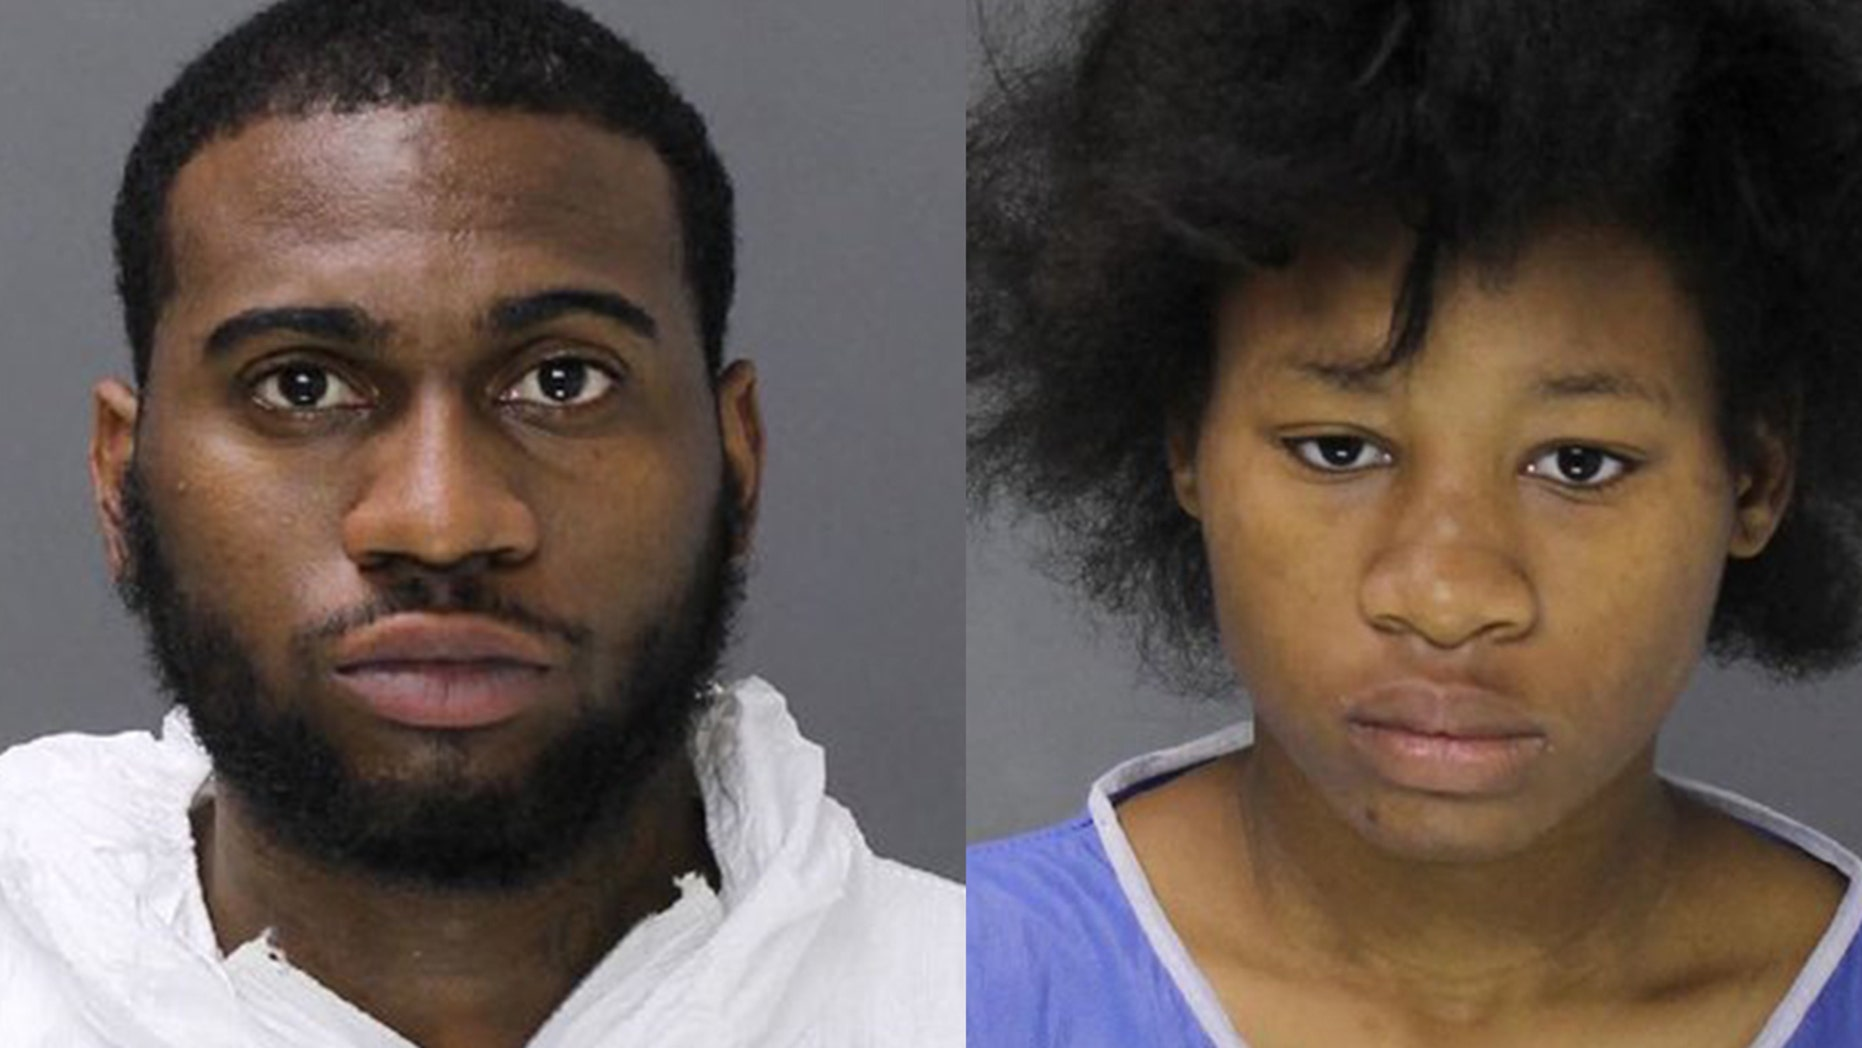 Keiff King, 26, and Lisa Smith, 19, were arrested Tuesday in connection with the beating death of their 4-year-old son, authorities said.